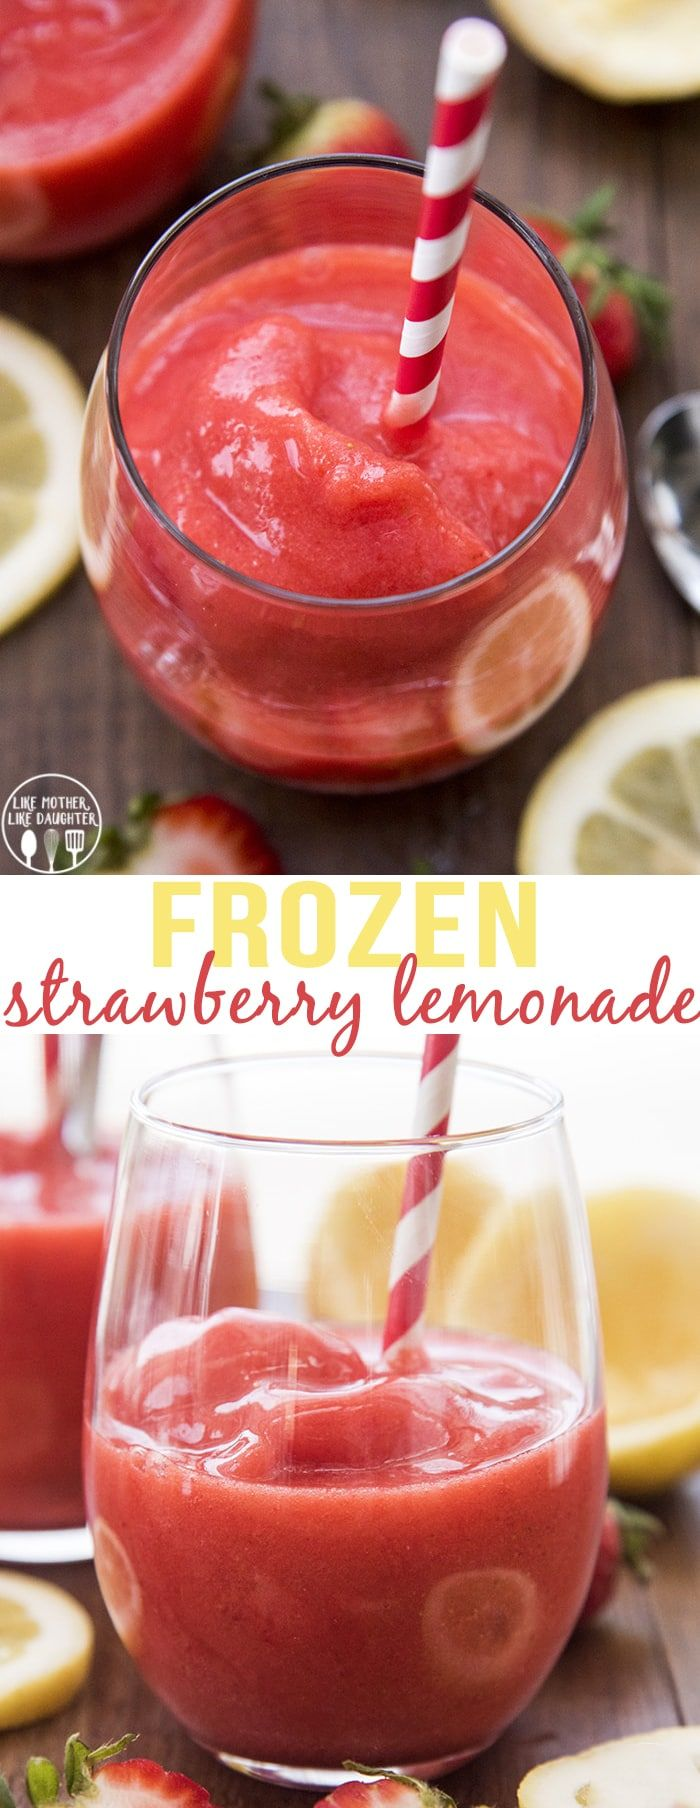 Frozen Strawberry Lemonade is the perfect sweet and tangy cold treat to help you stay cool this summer! #strawberrylemonaderecipes